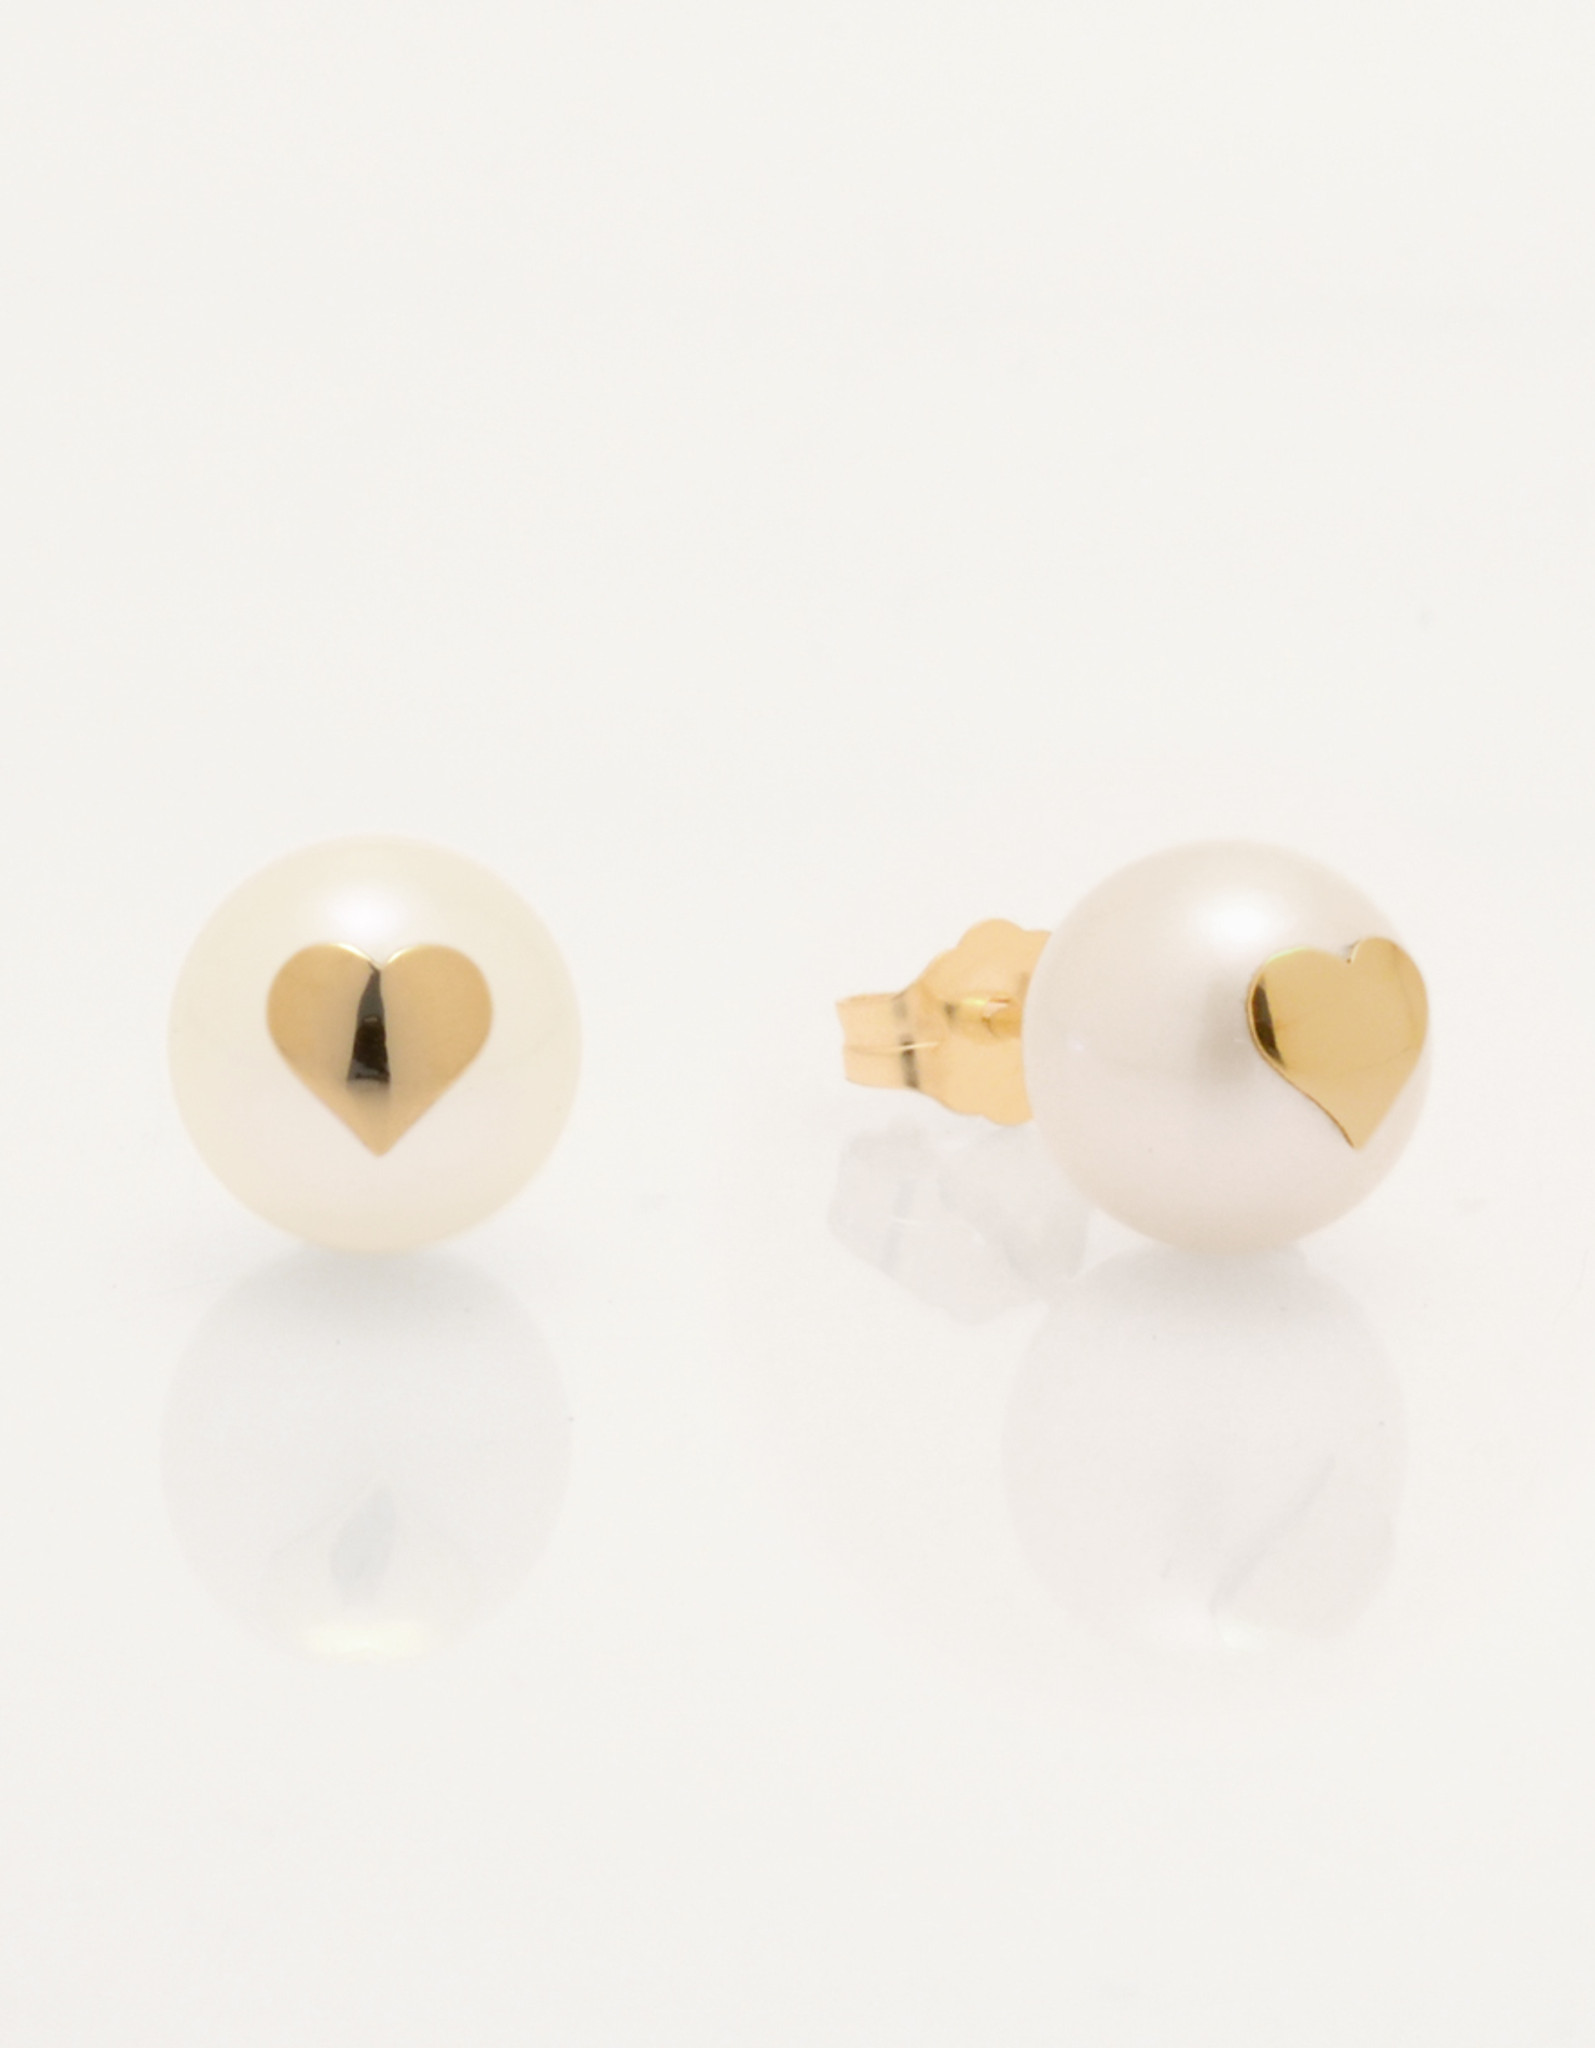 Cultured Freshwater Pearl Earrings with 14k Gold Hearts & Post by Jewelry Designer Nektar De Stagni (8-9mm)